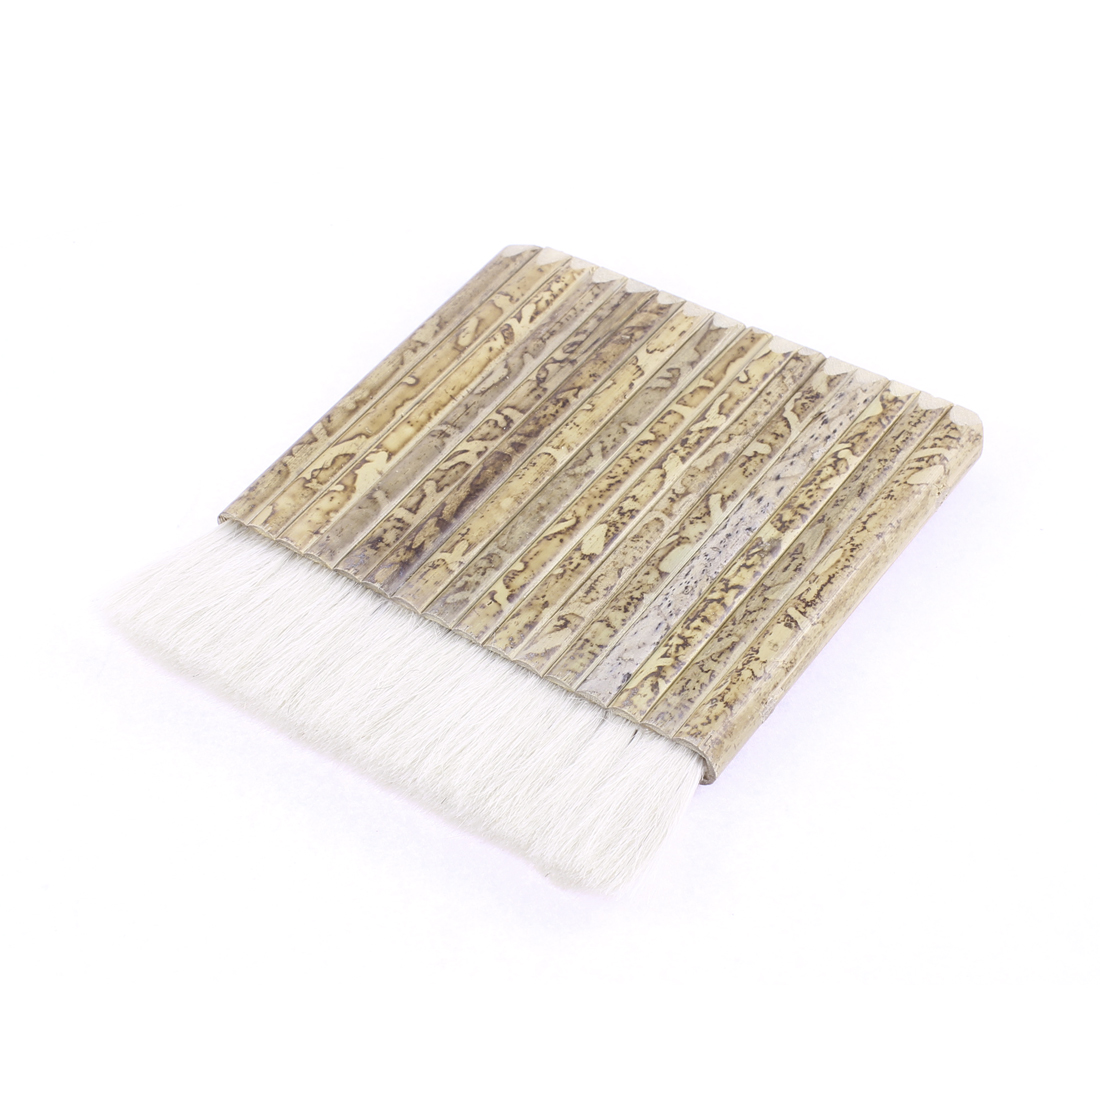 "White Faux Fur Hair Flat Bamboo Handle Paint Painting Brush 5.5"" Length"